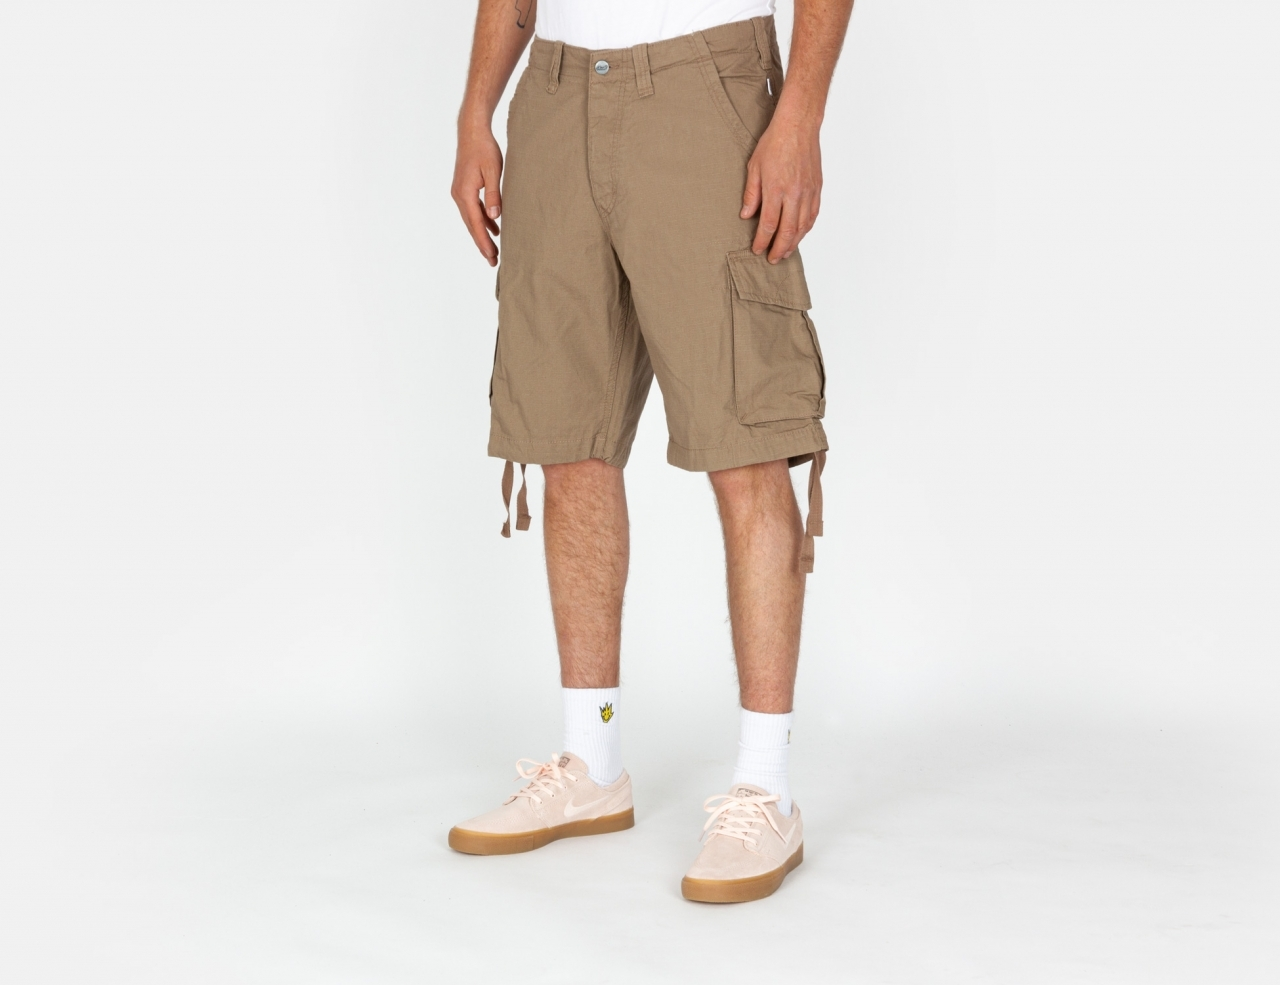 Reell Jeans New Cargo Shorts - Taupe